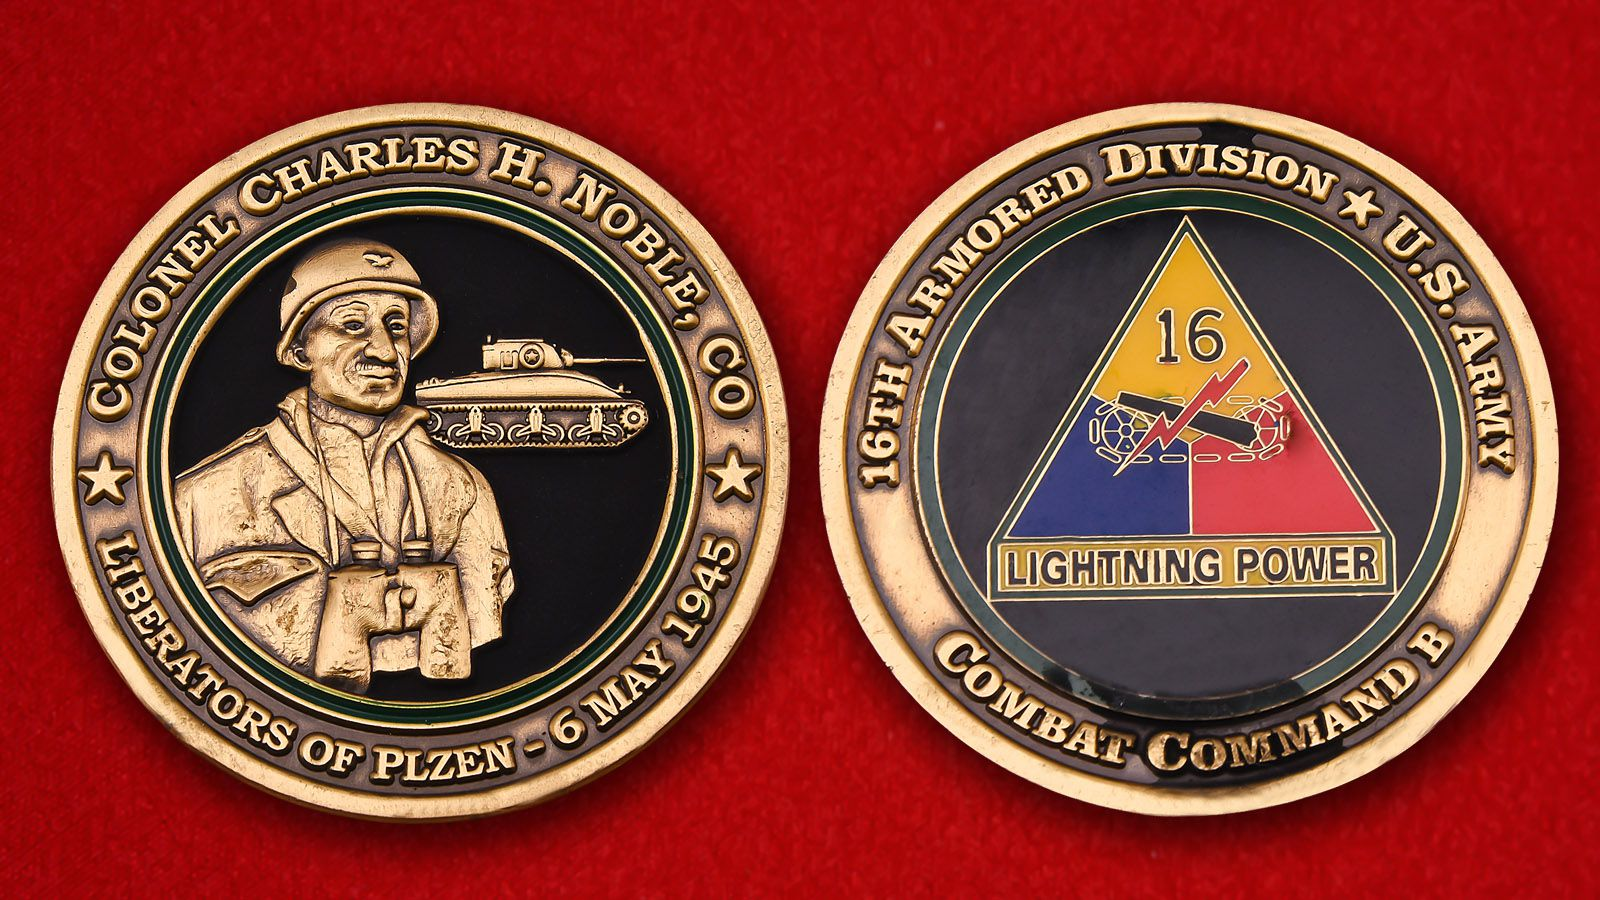 16th Armored Division U.S. Army Challenge Coin - obverse and reverse